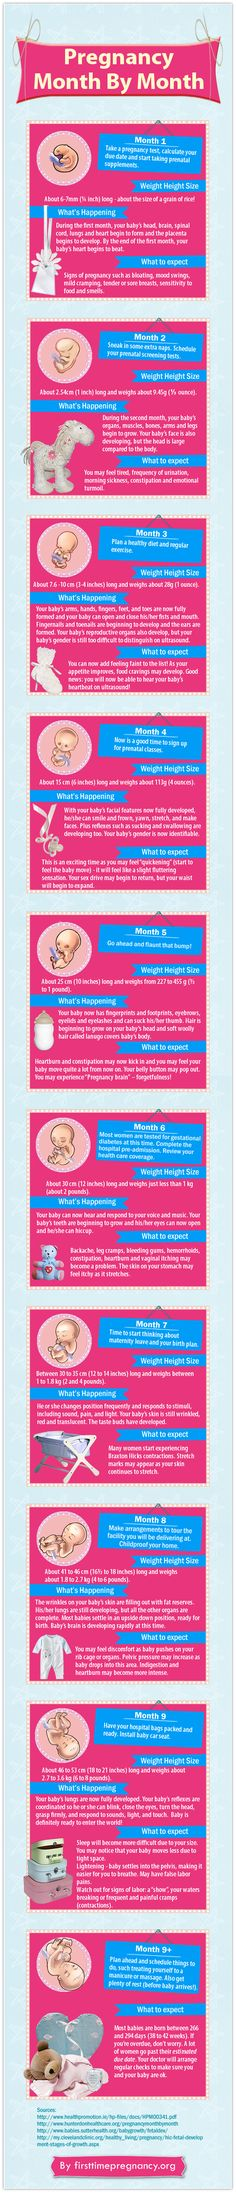 Pregnancy Month By Month Infographic